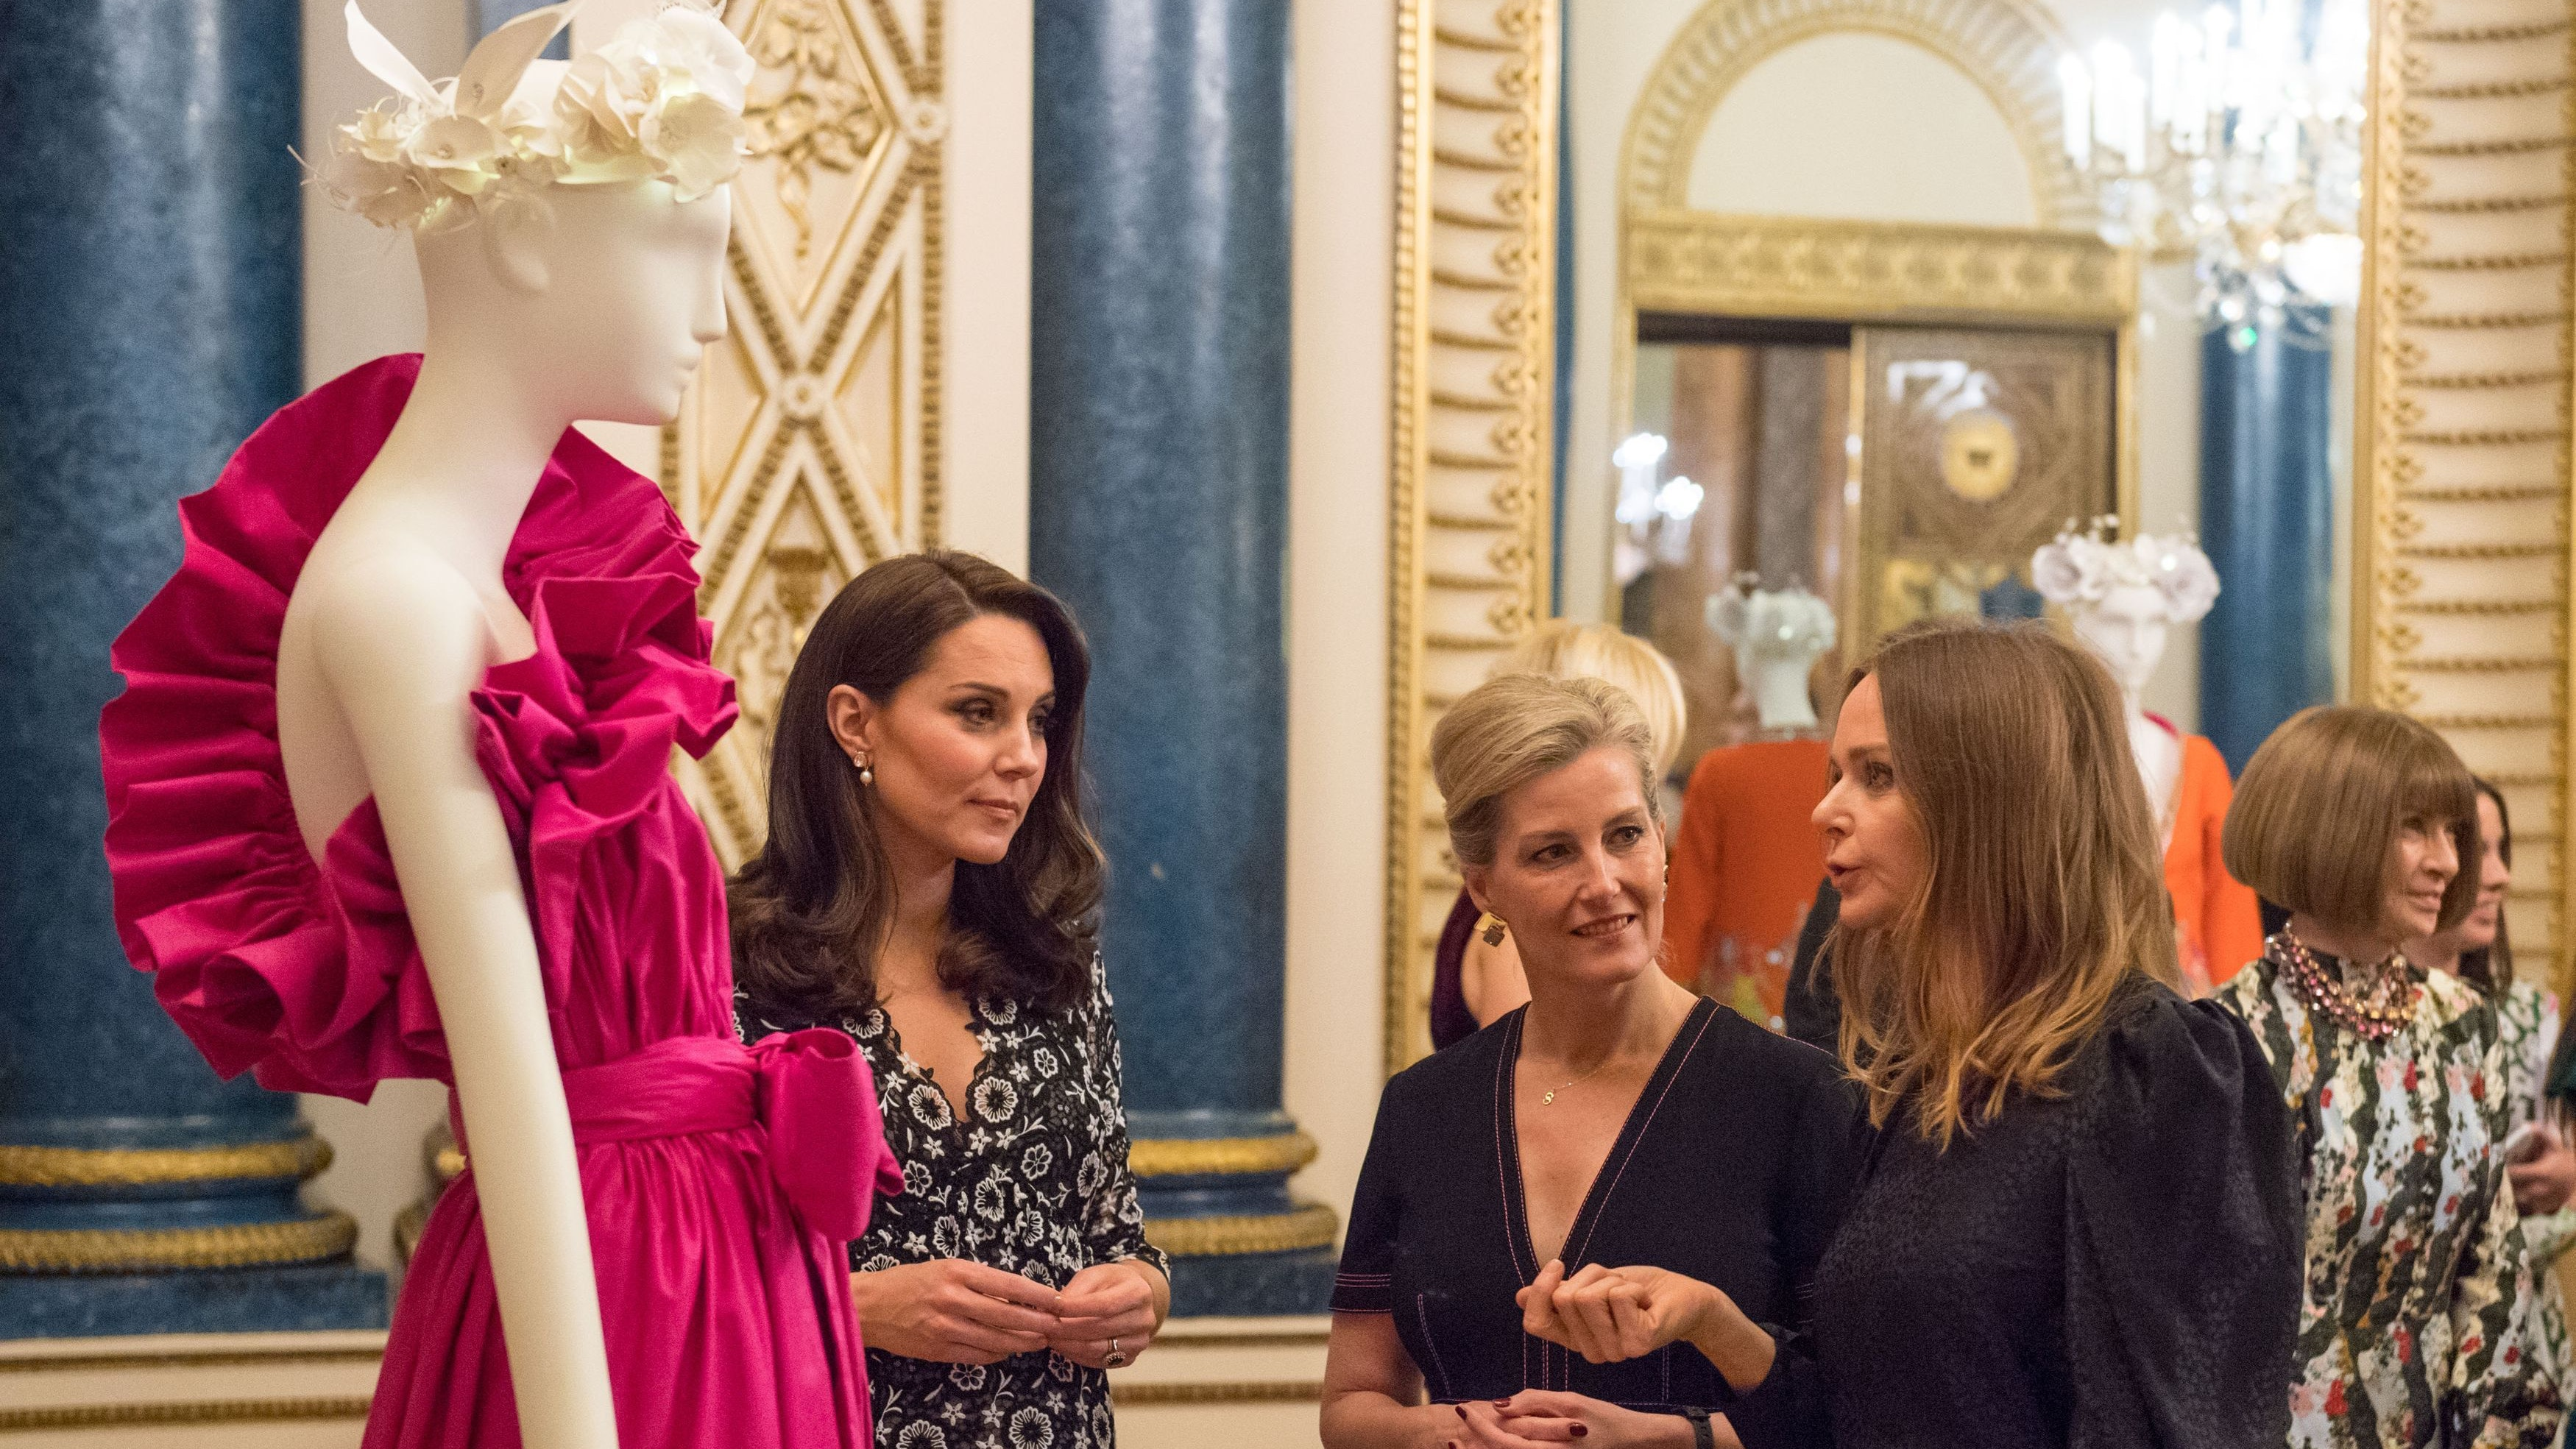 Kate Middleton Hosts Commonwealth Fashion Exchange Reception at Buckingham Palace